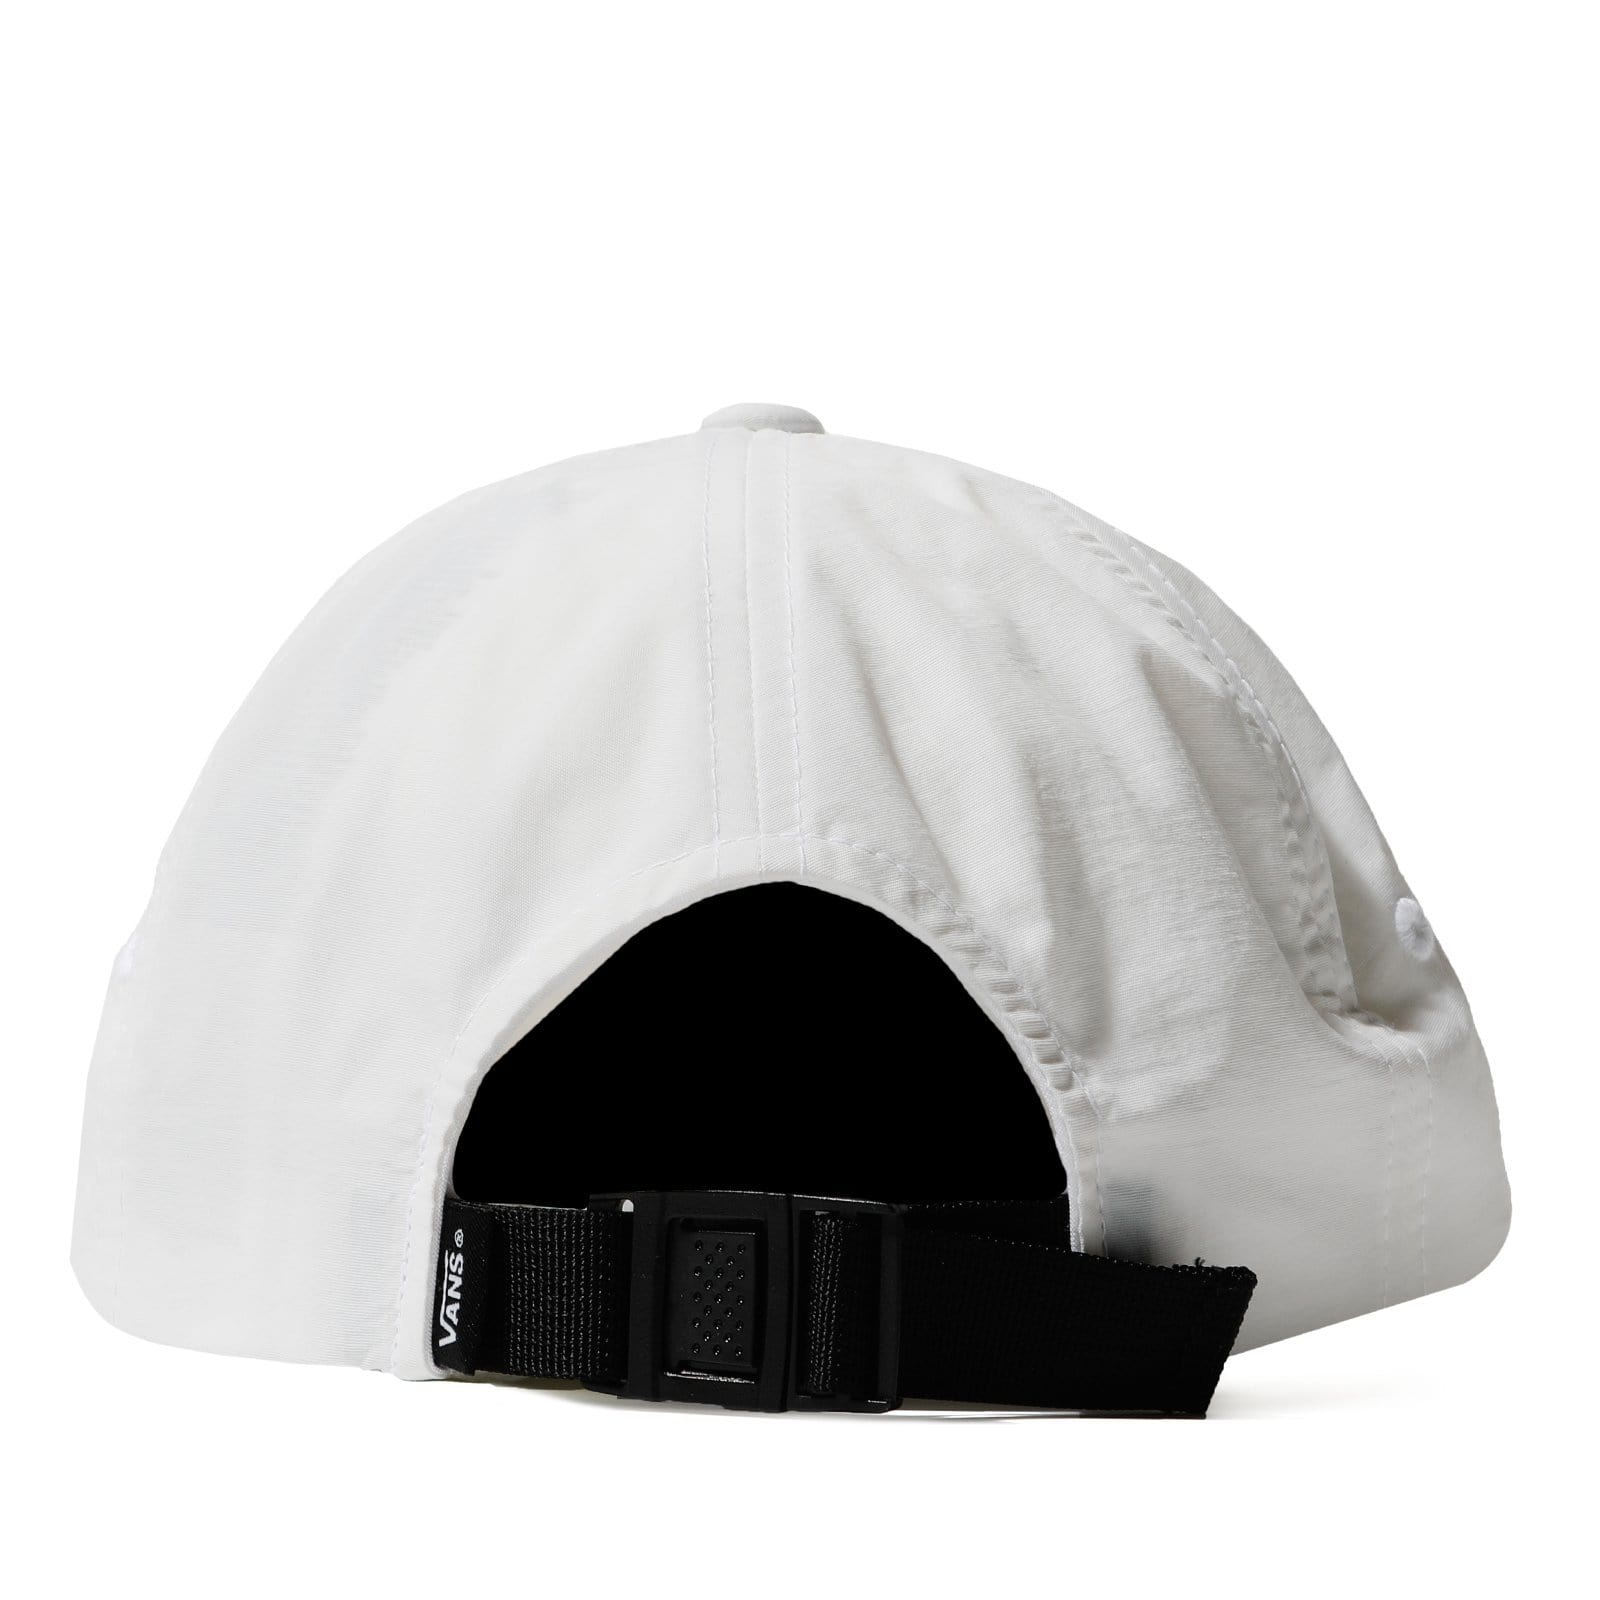 098e9cd1096 x LQQK Jockey Cap White – Bodega